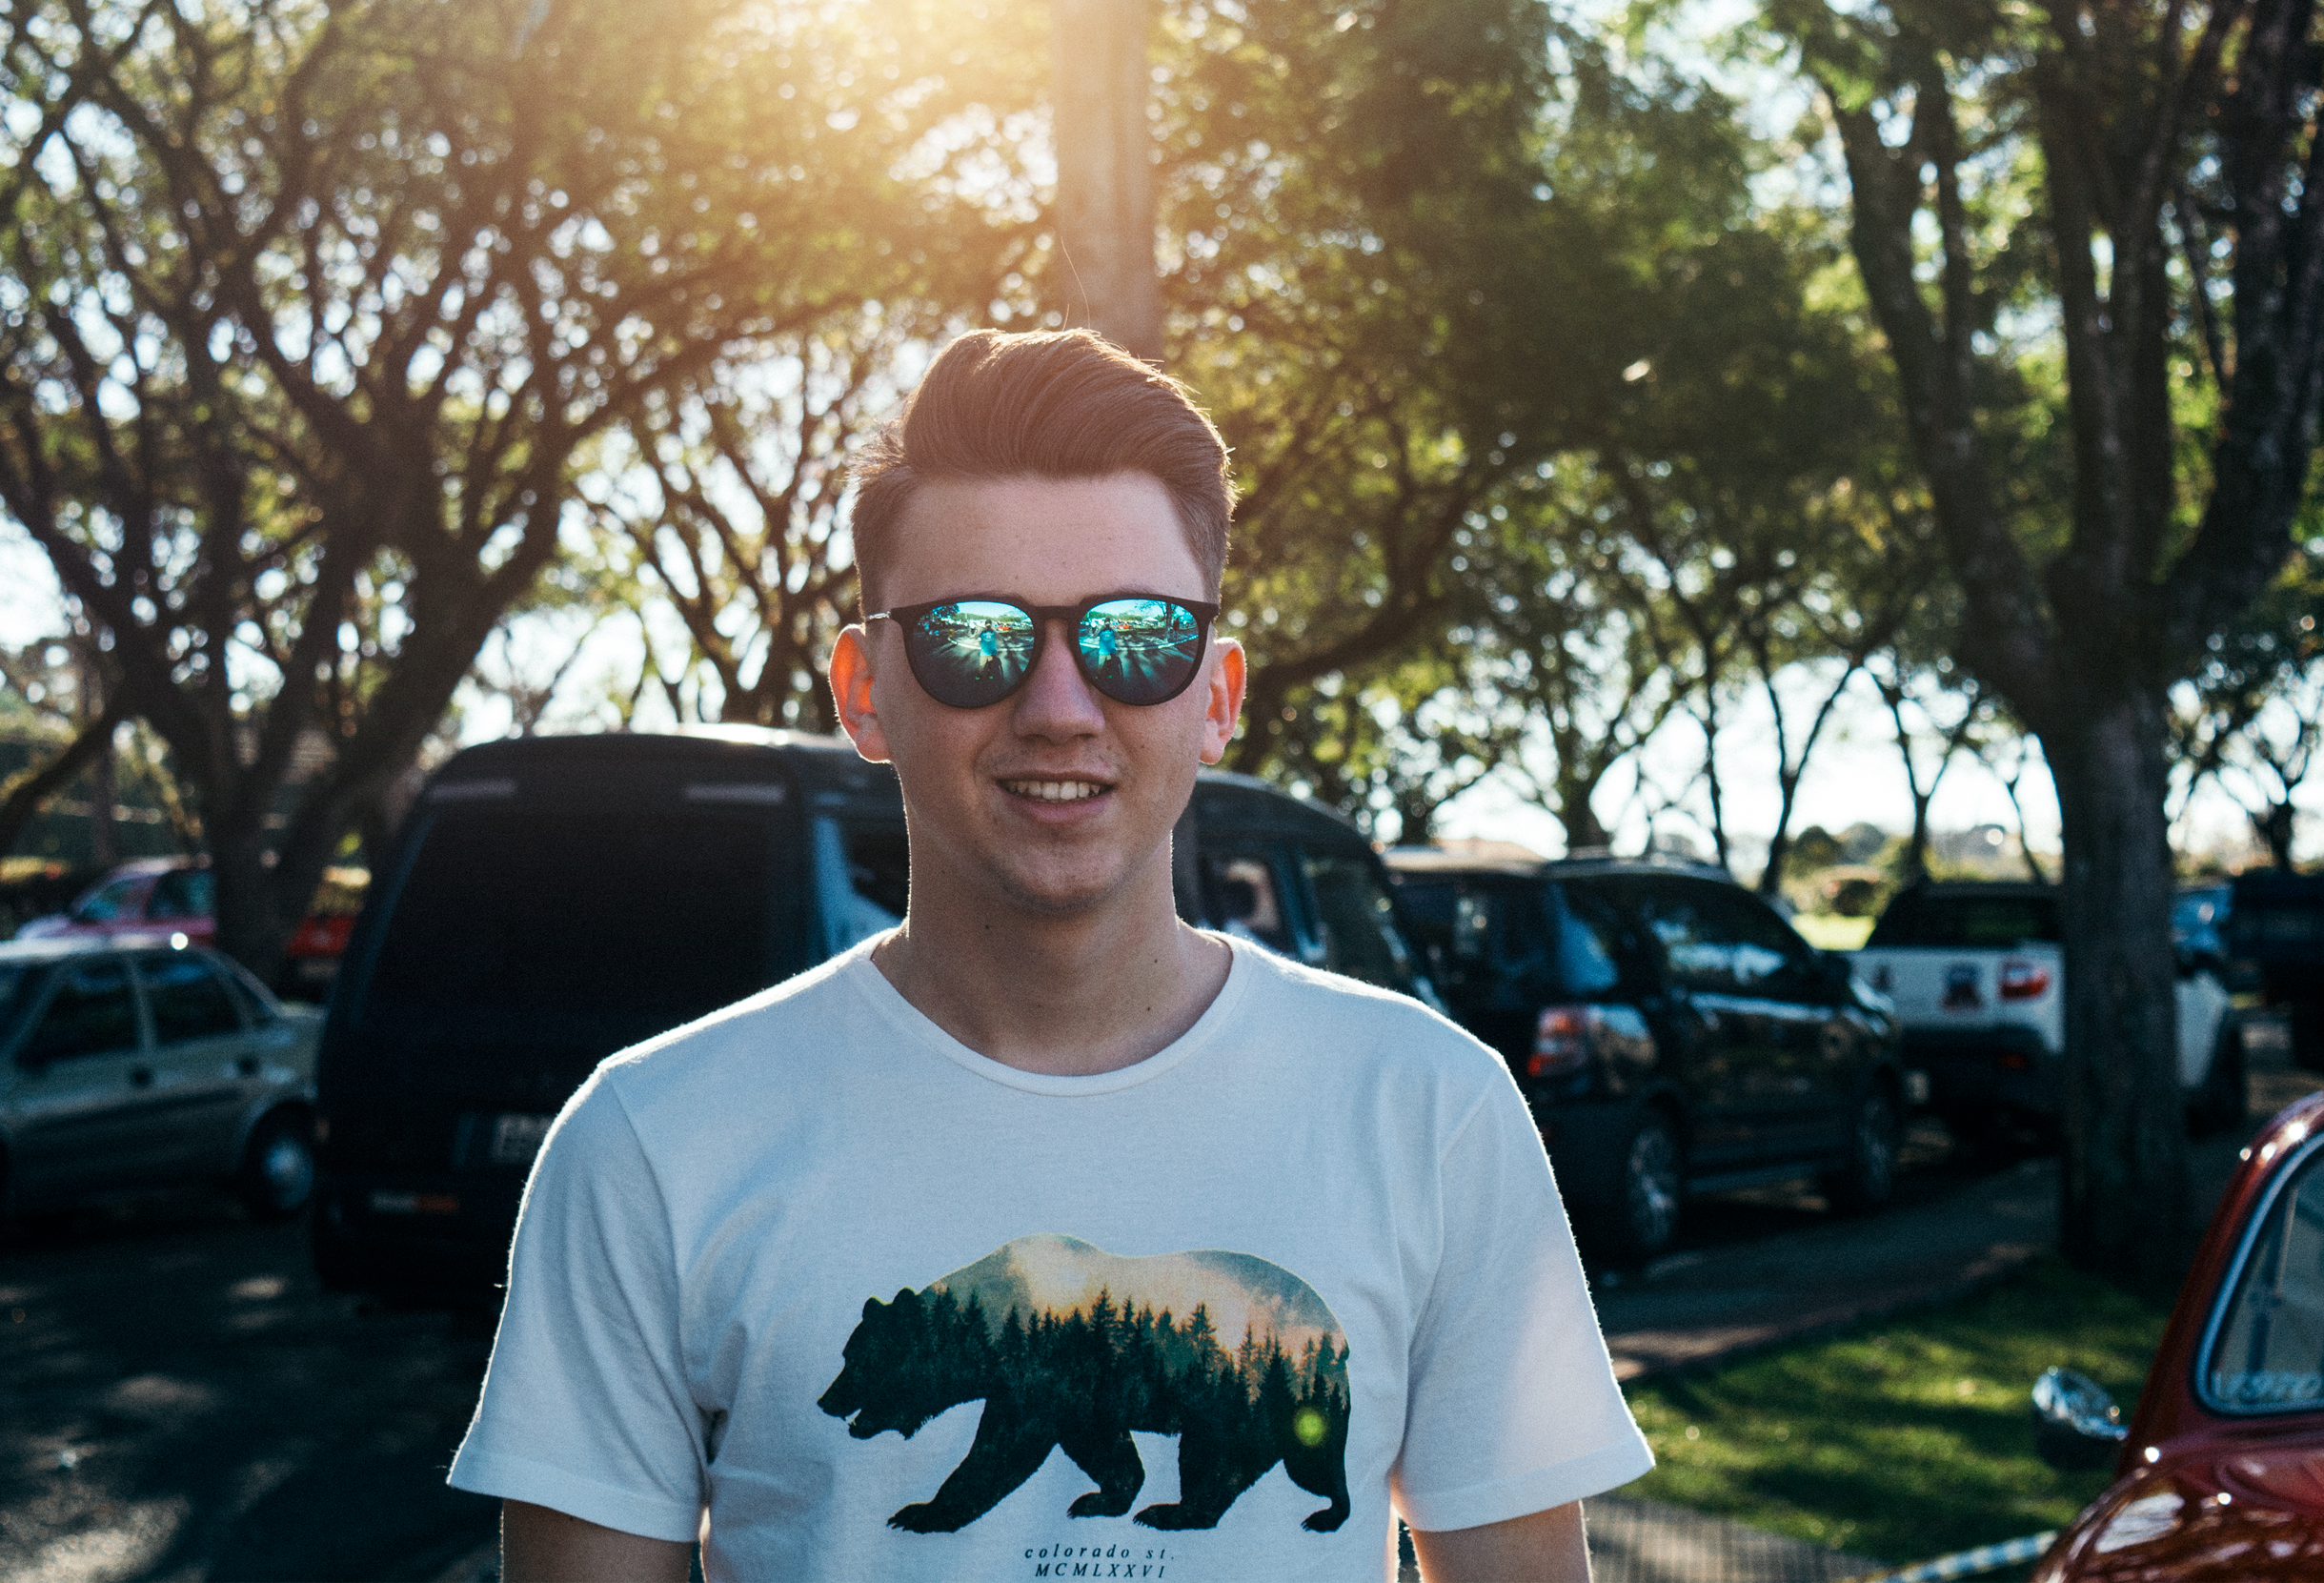 Man Wearing White and Black Bear Printed Shirt and Sunglasses, Adult, Park, Wear, Vehicles, HQ Photo